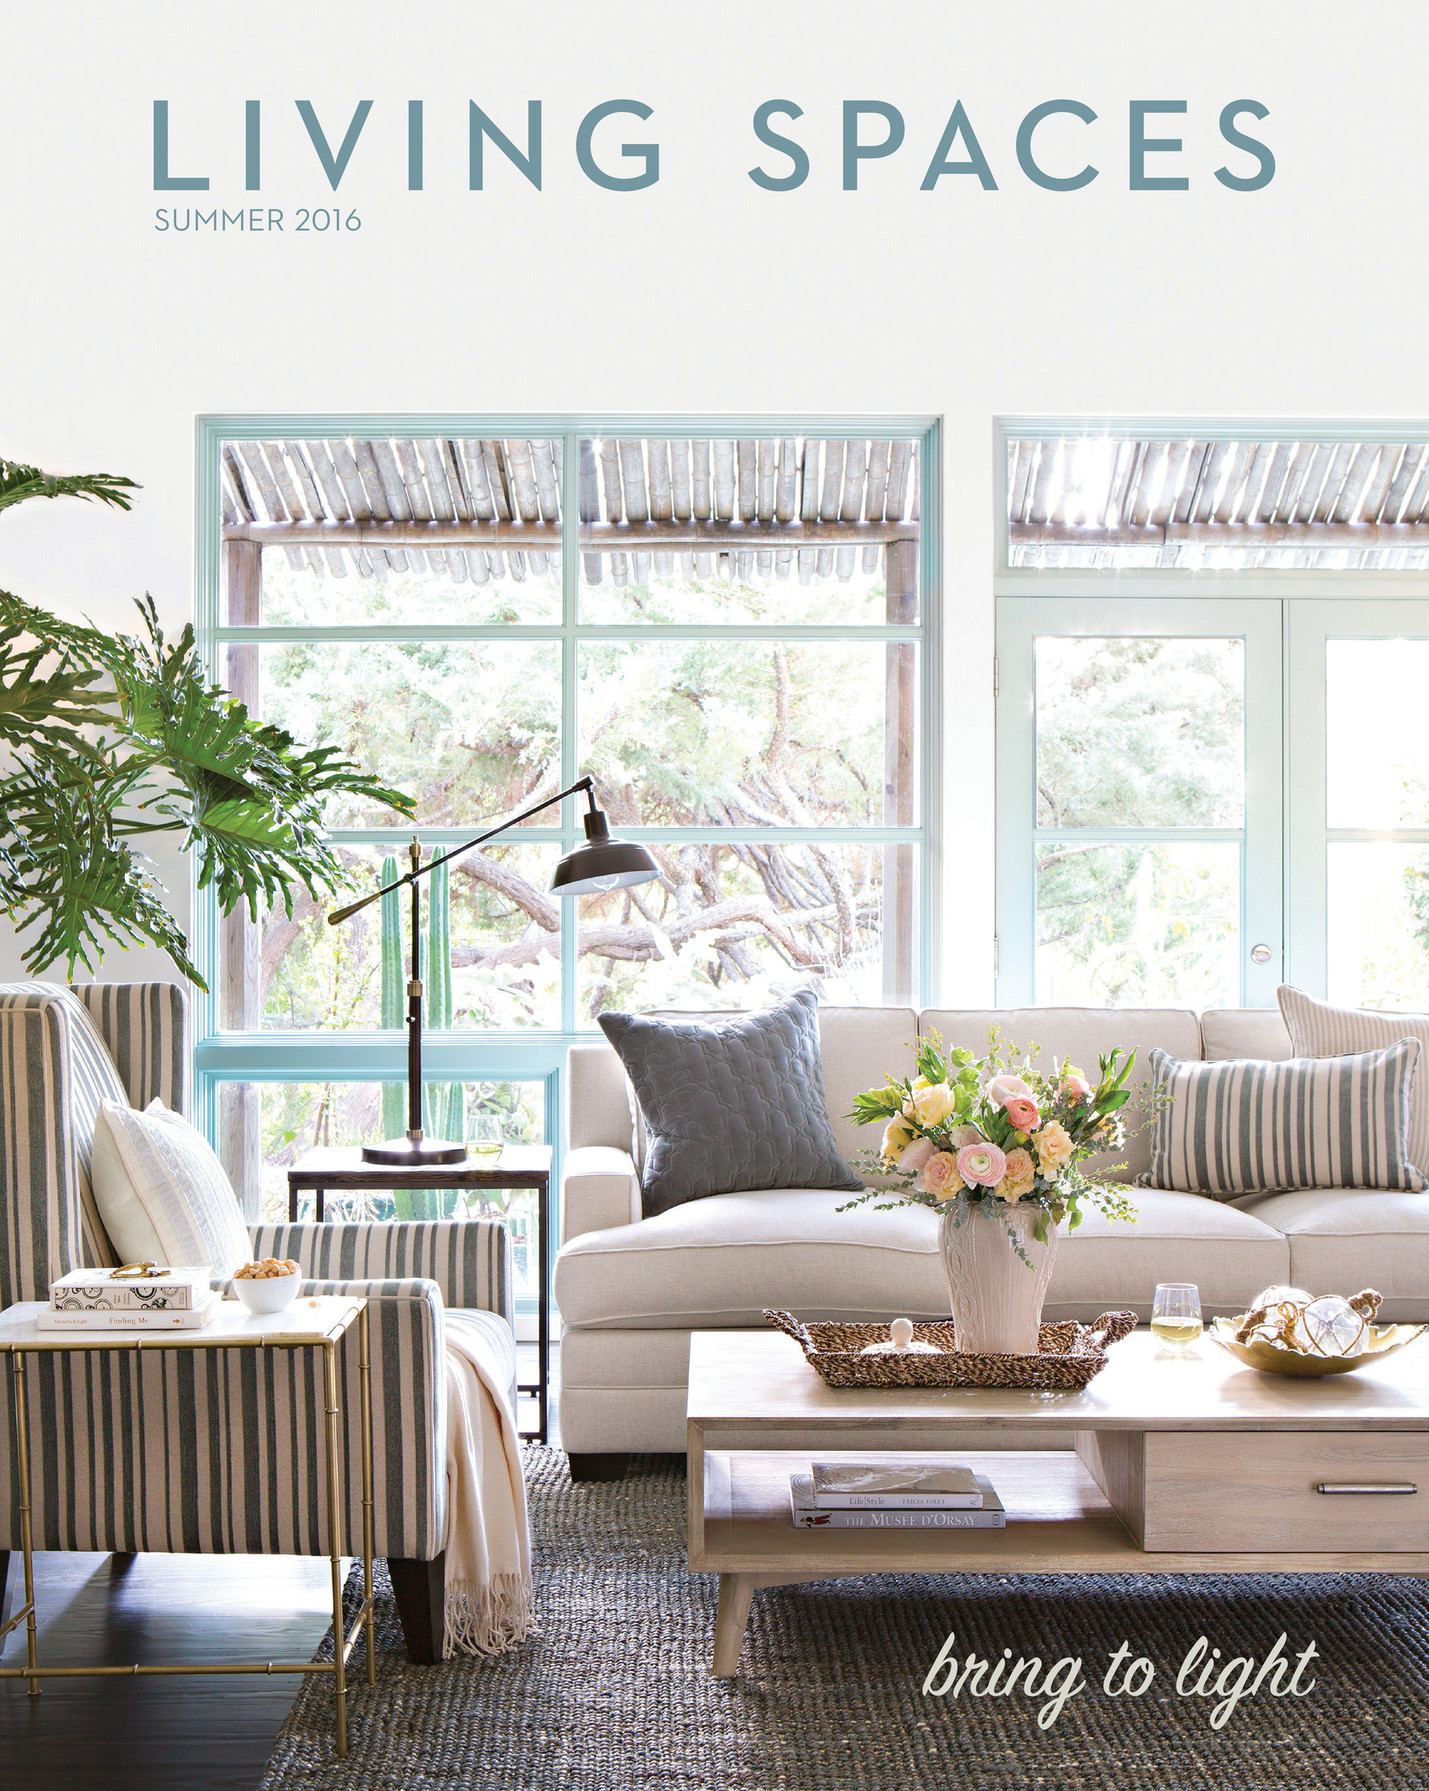 Living Spaces - Product Catalog - Summer 2016 - Page 8-9